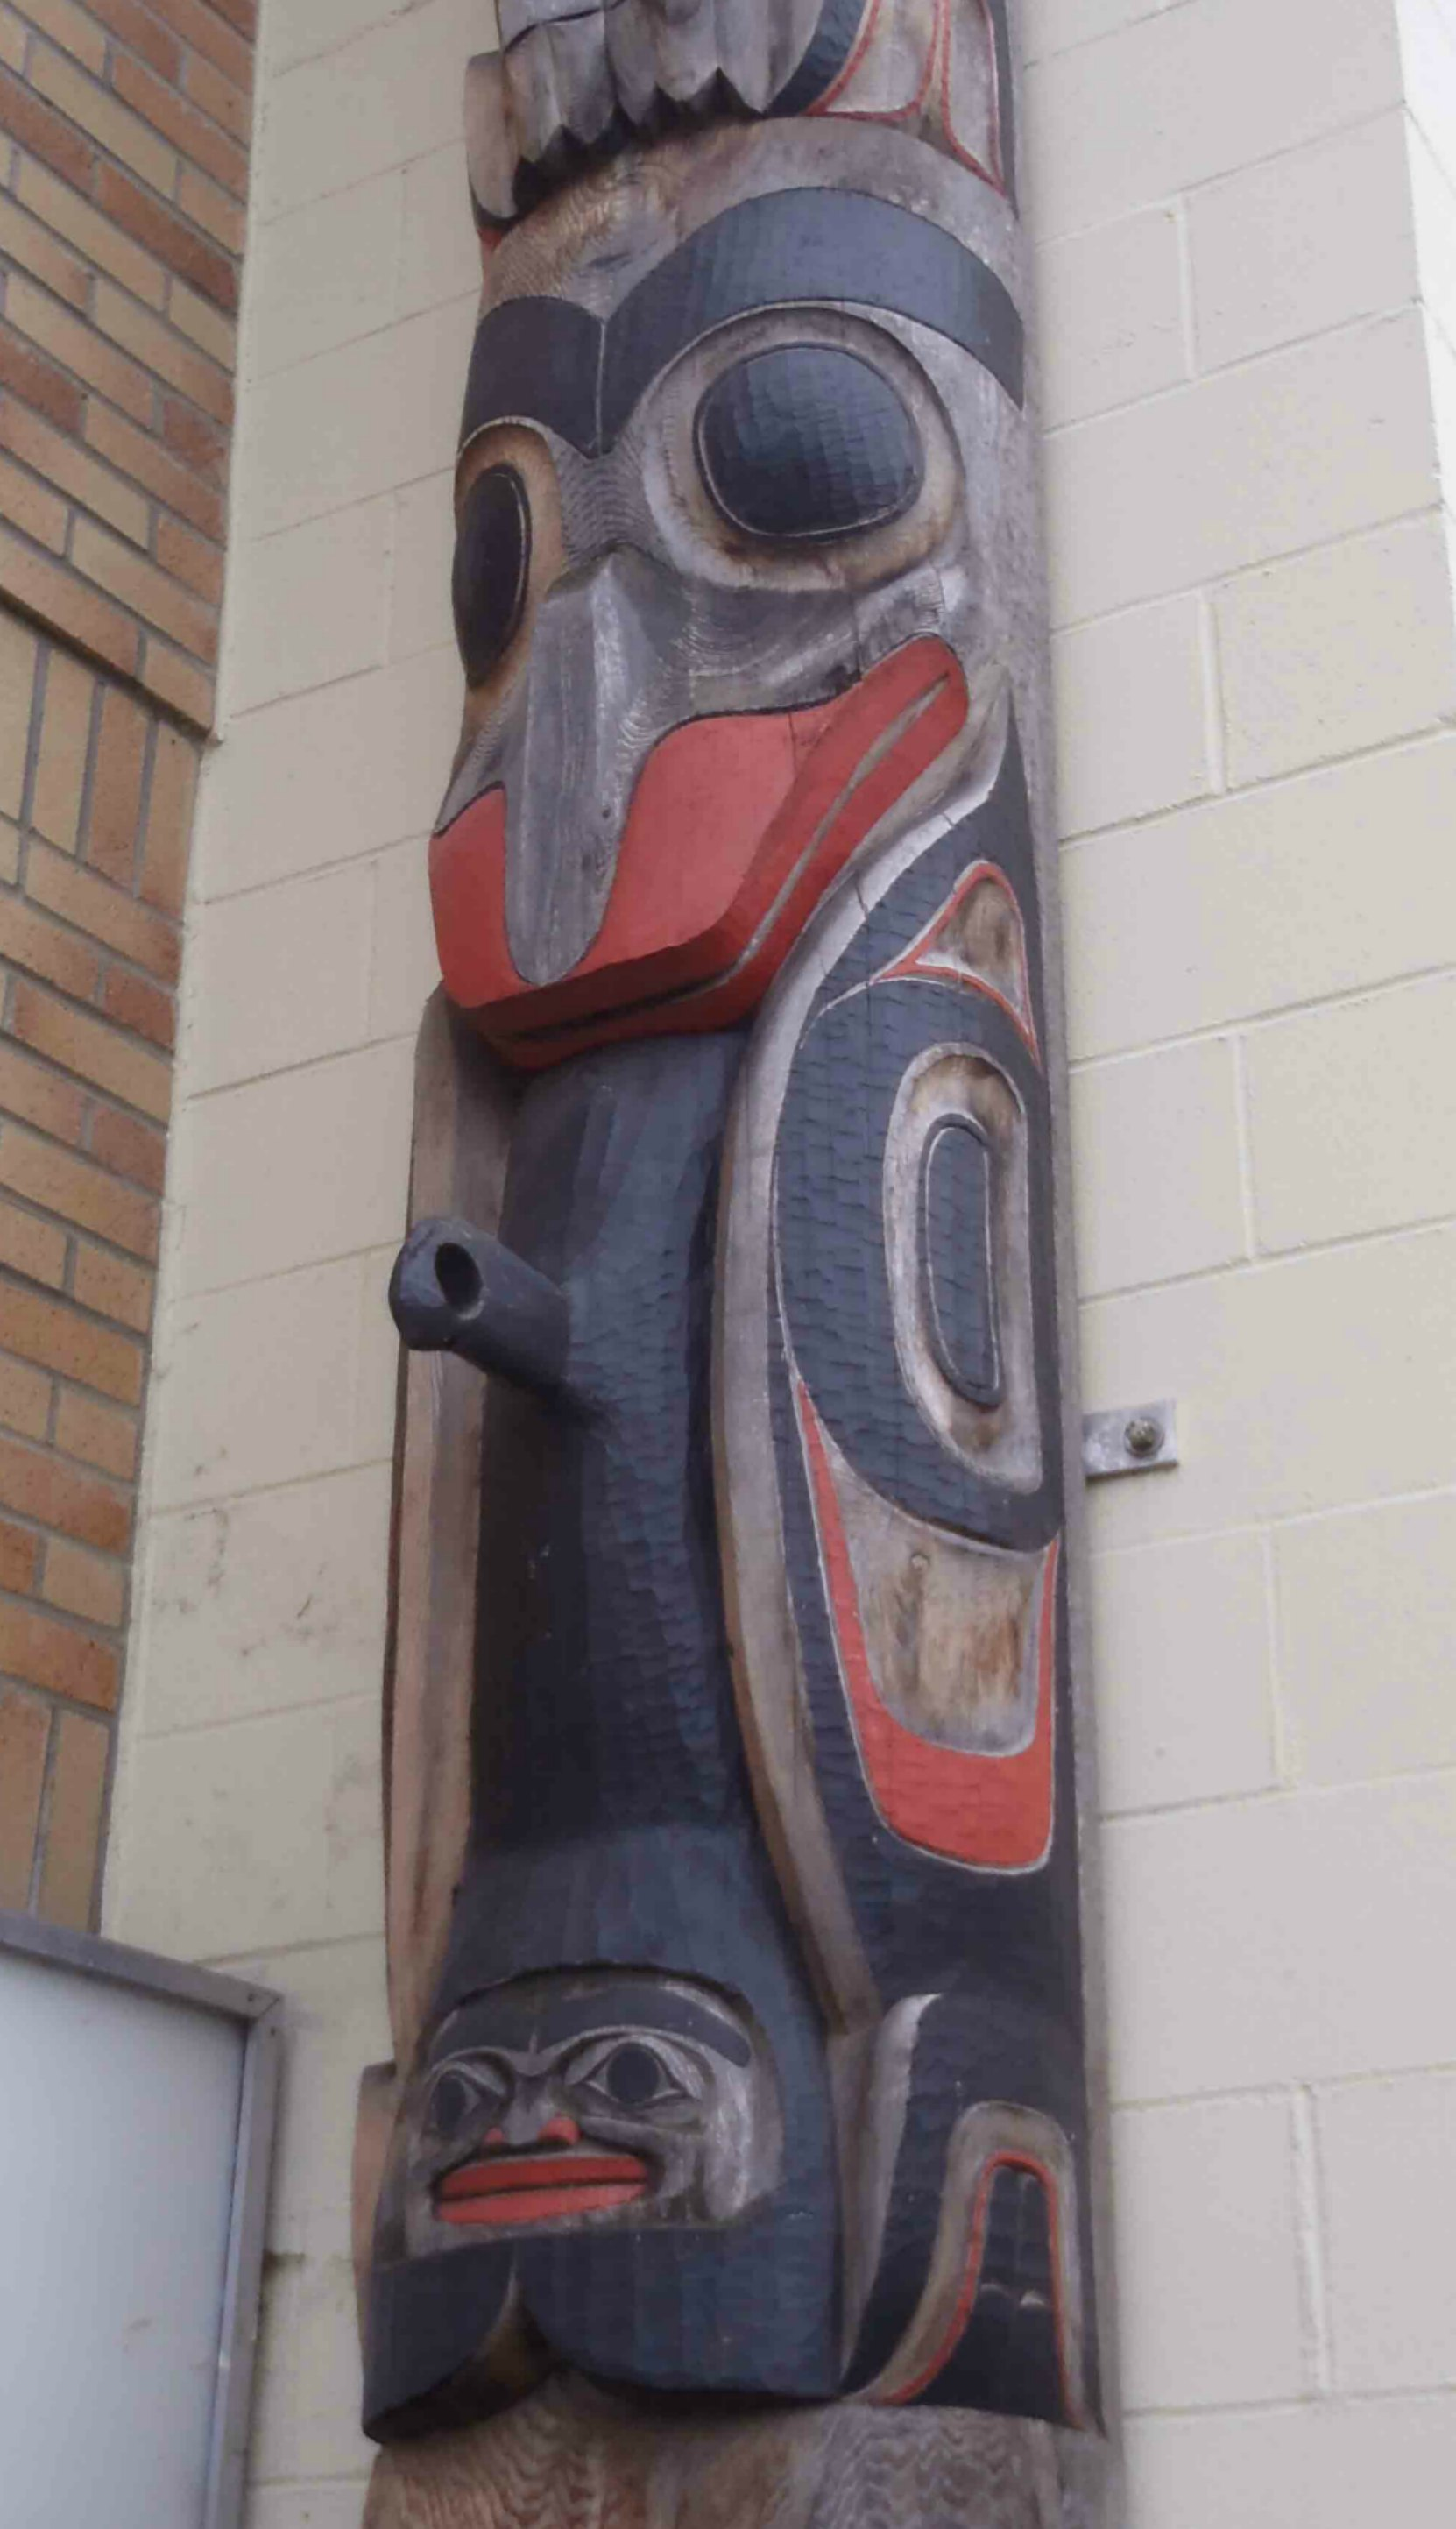 Bringing Light To The World totem pole, Killer Whale figure, Station Street, Duncan, B.C.